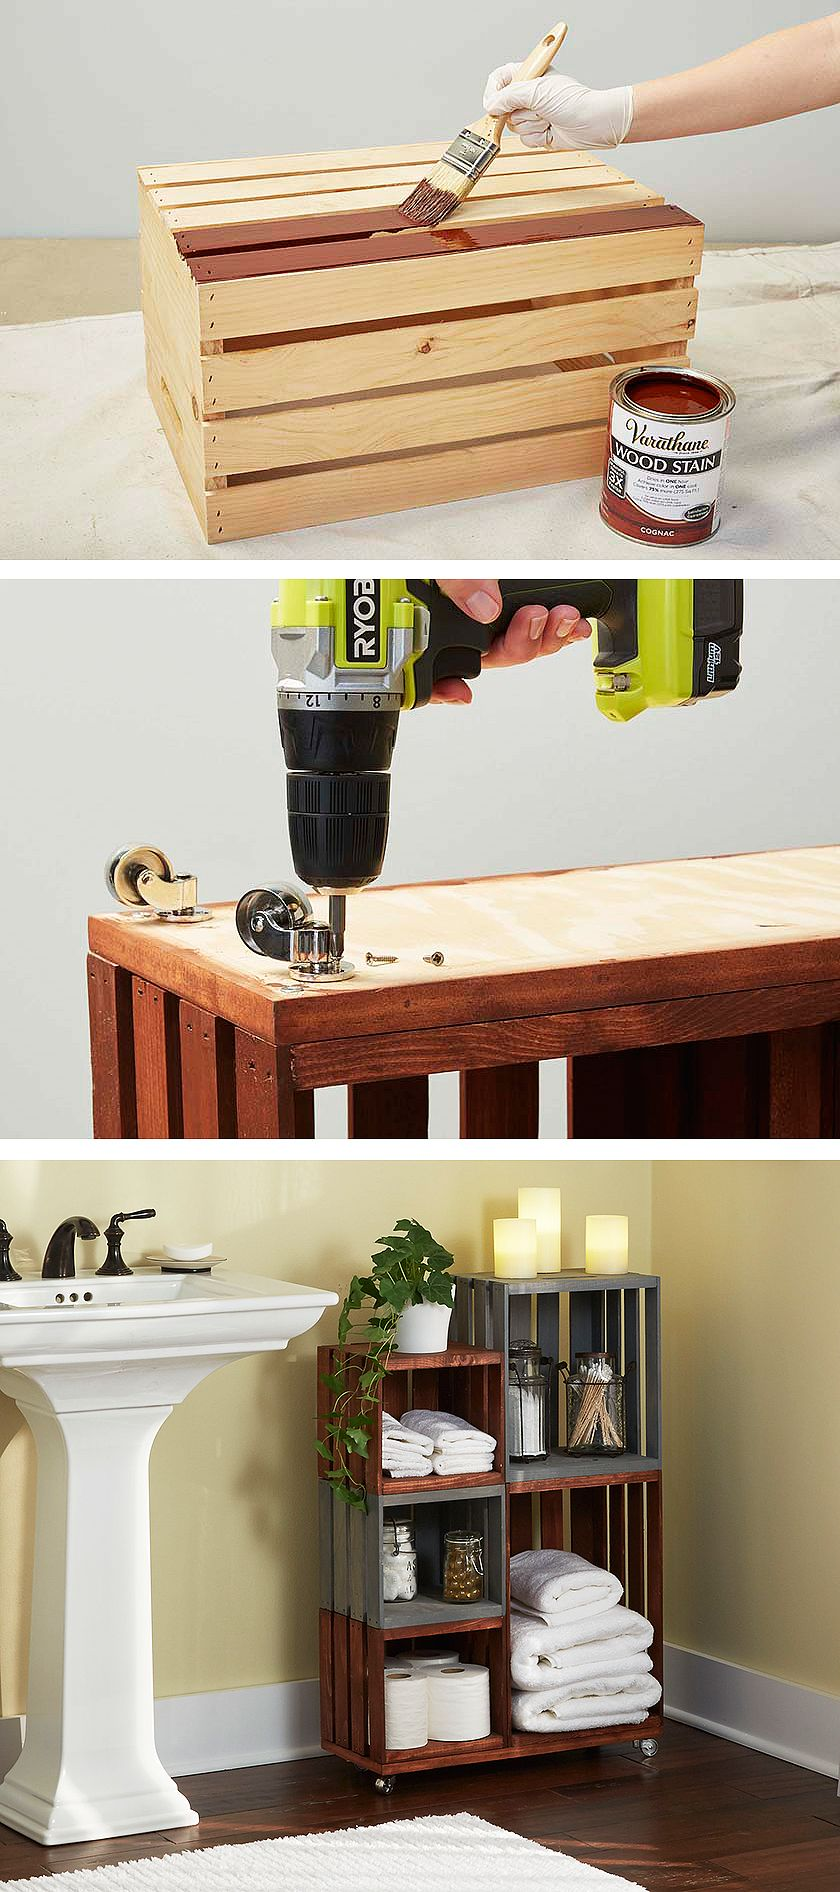 Bagno Design Fai Da Te Diy Bathroom Storage Shelves Made From Wooden Crates Good